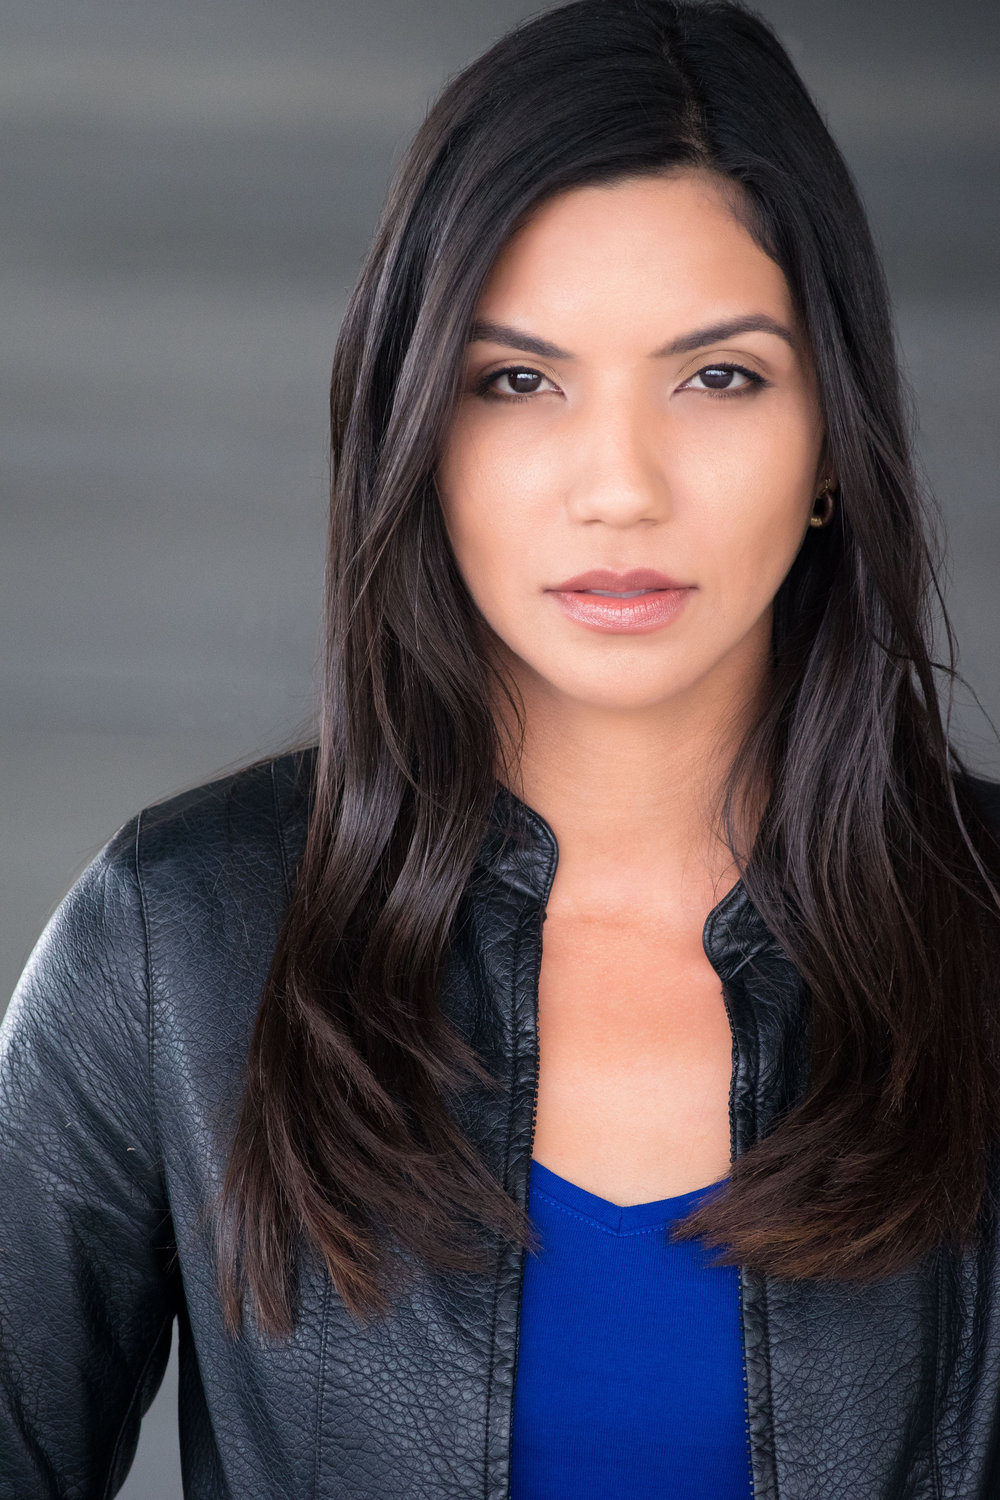 Dayana Rincon, Television Actress, Intro to Acting Instructor